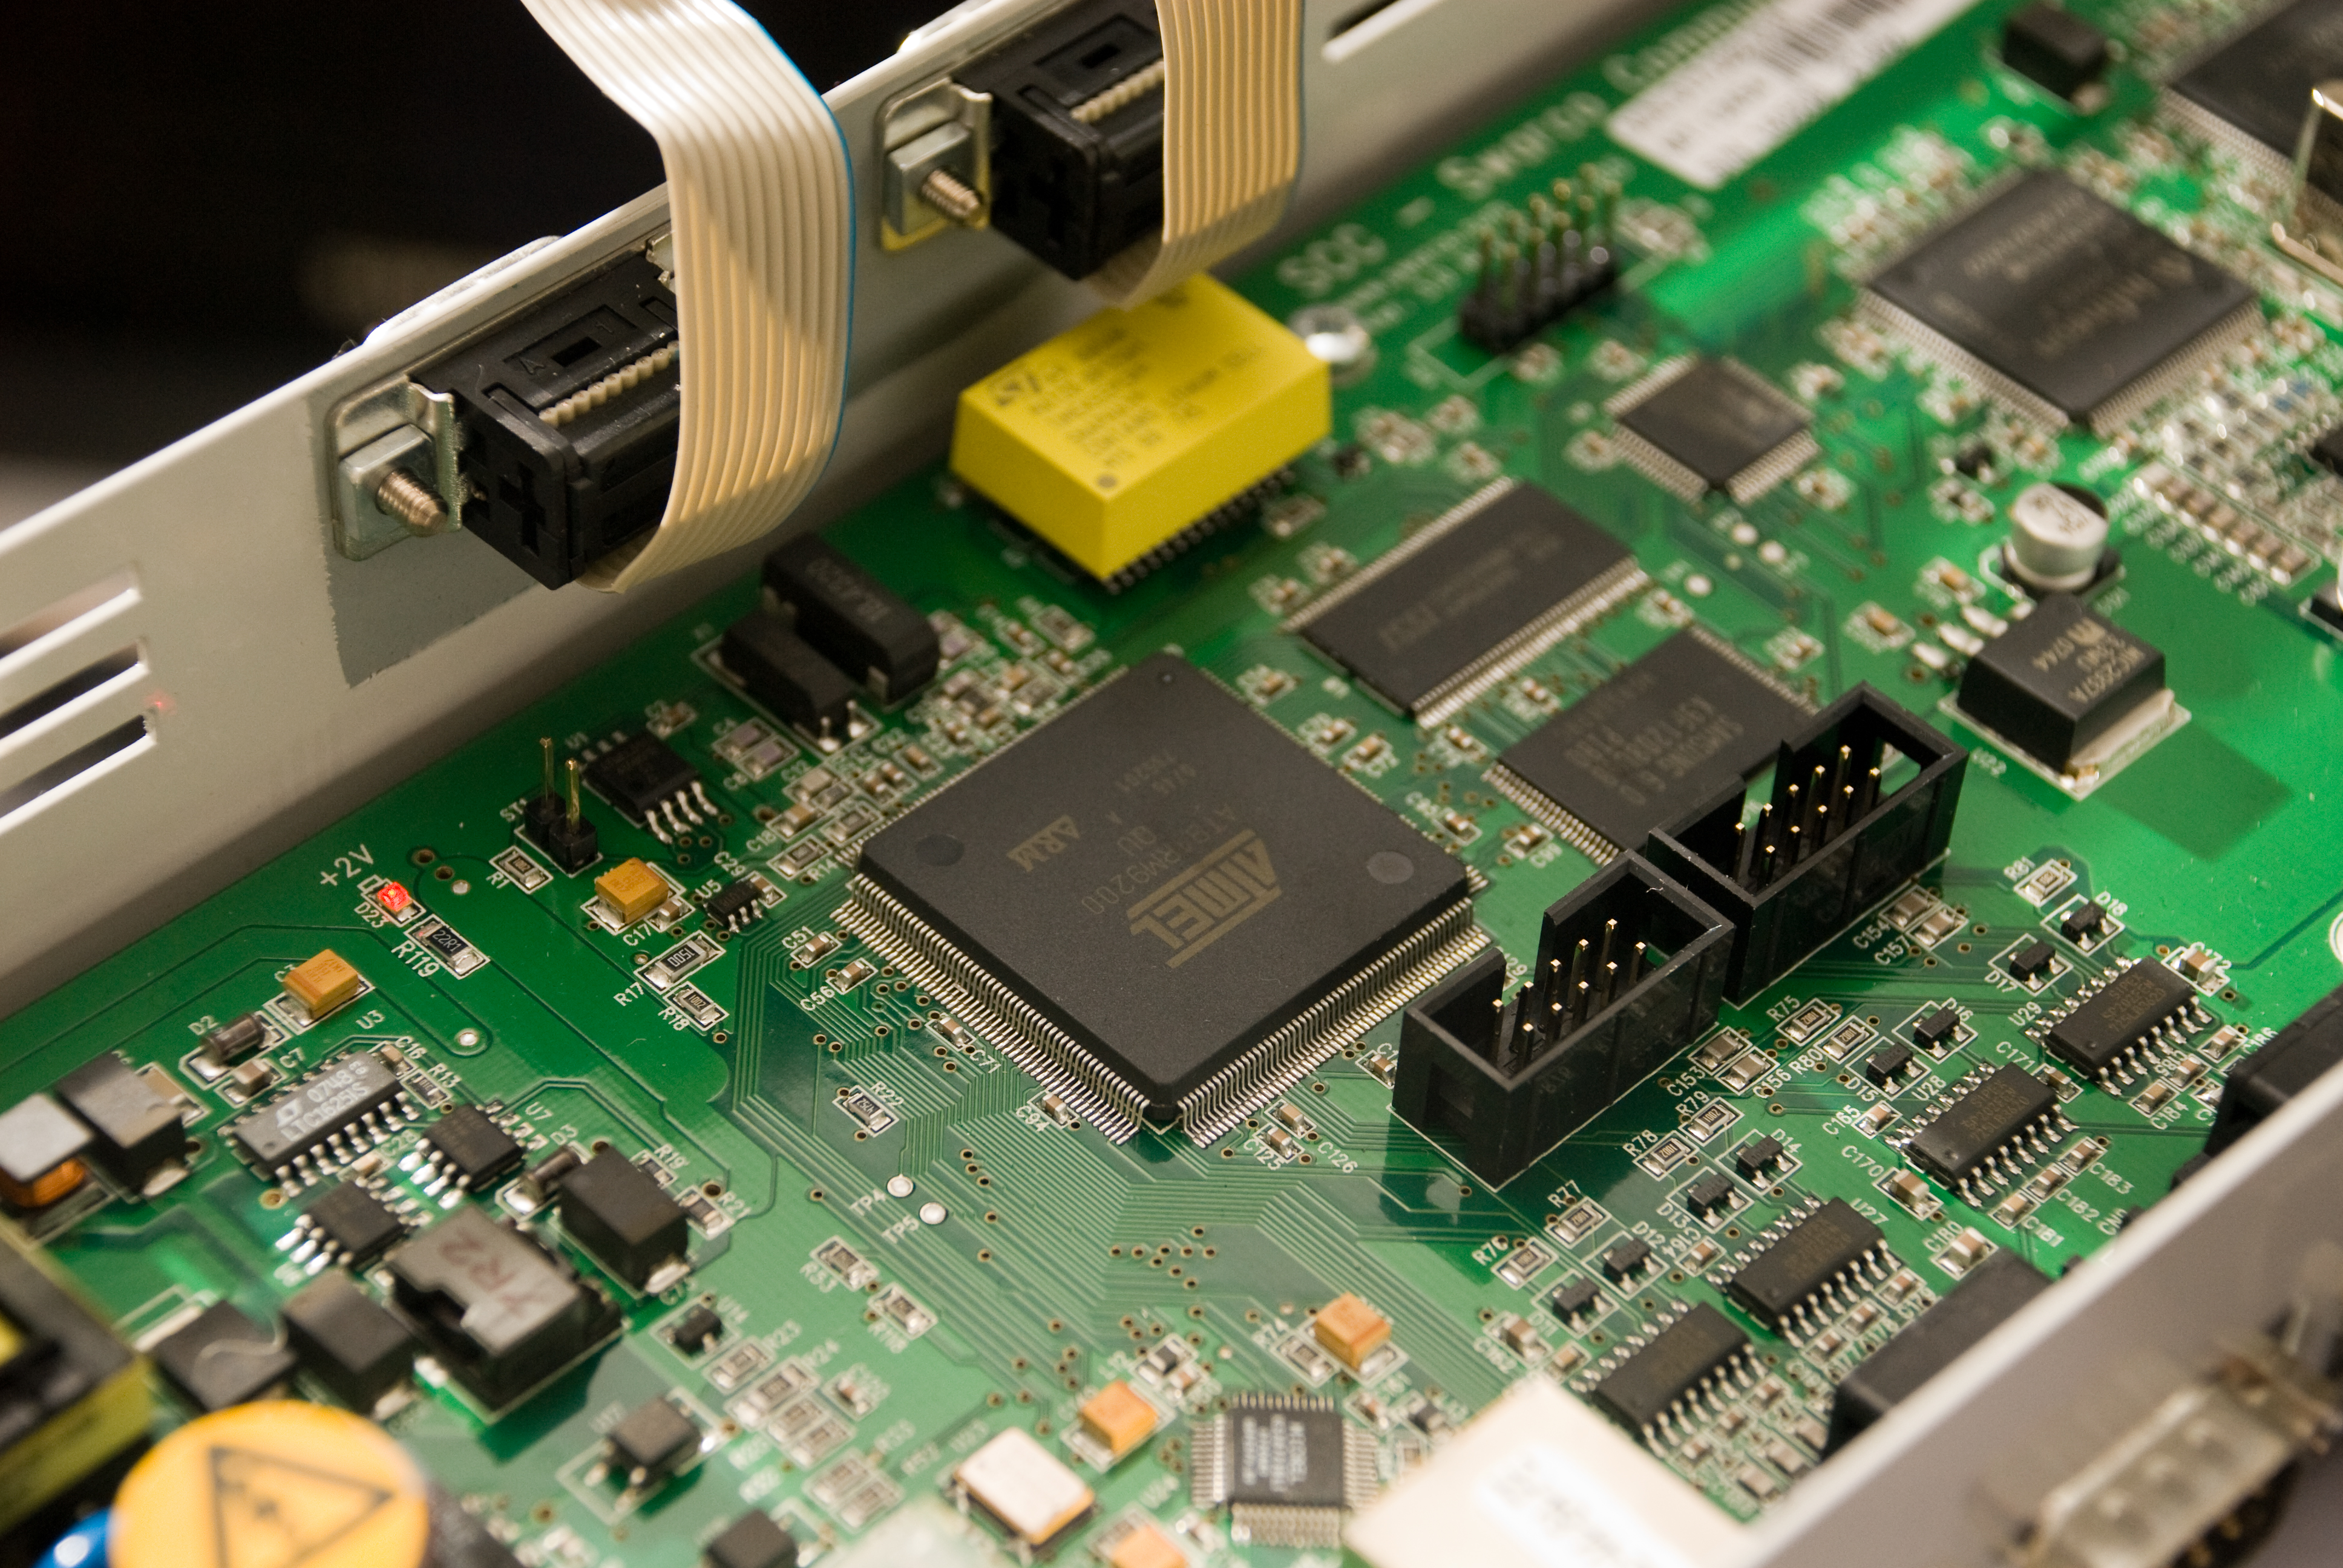 Taking Decent Photographs Of Electronic Hardware And Pcbas Camera Lens Circuit Board Digital Photography Concept Photo Below Was Shot 8 Years Ago By Cheap Entry Level Old Mid Range